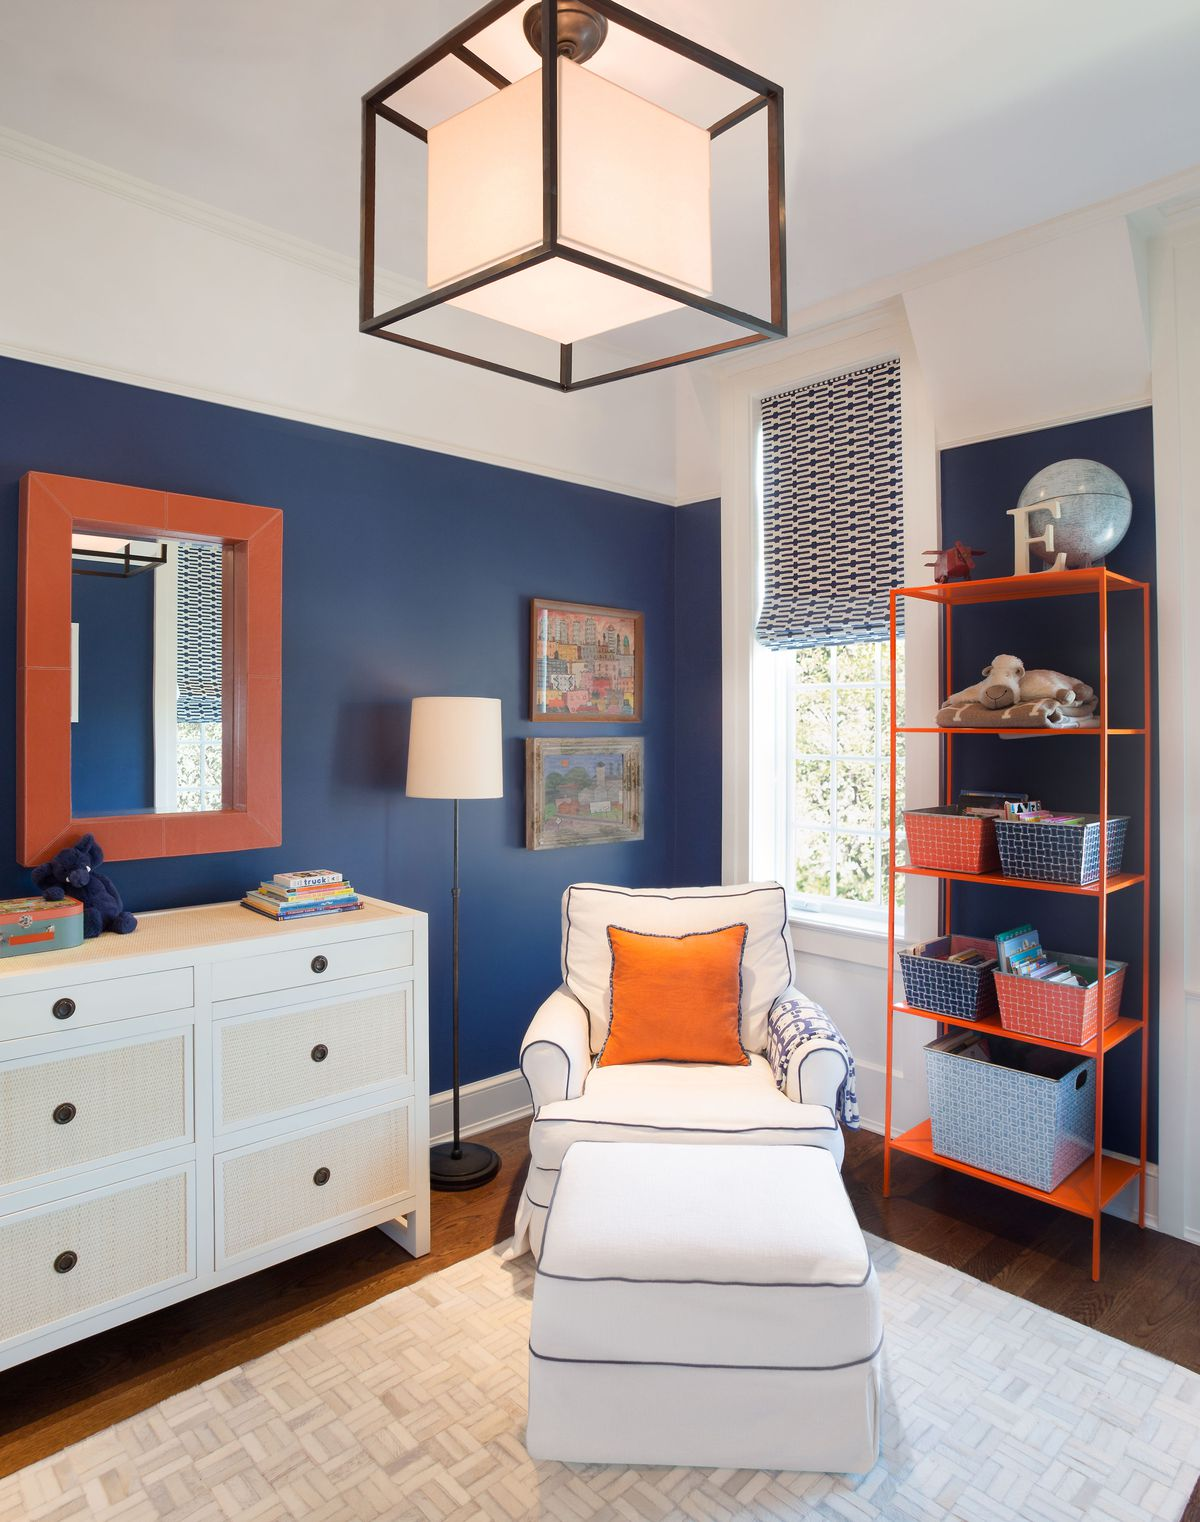 Room with blue wall and orange accents.